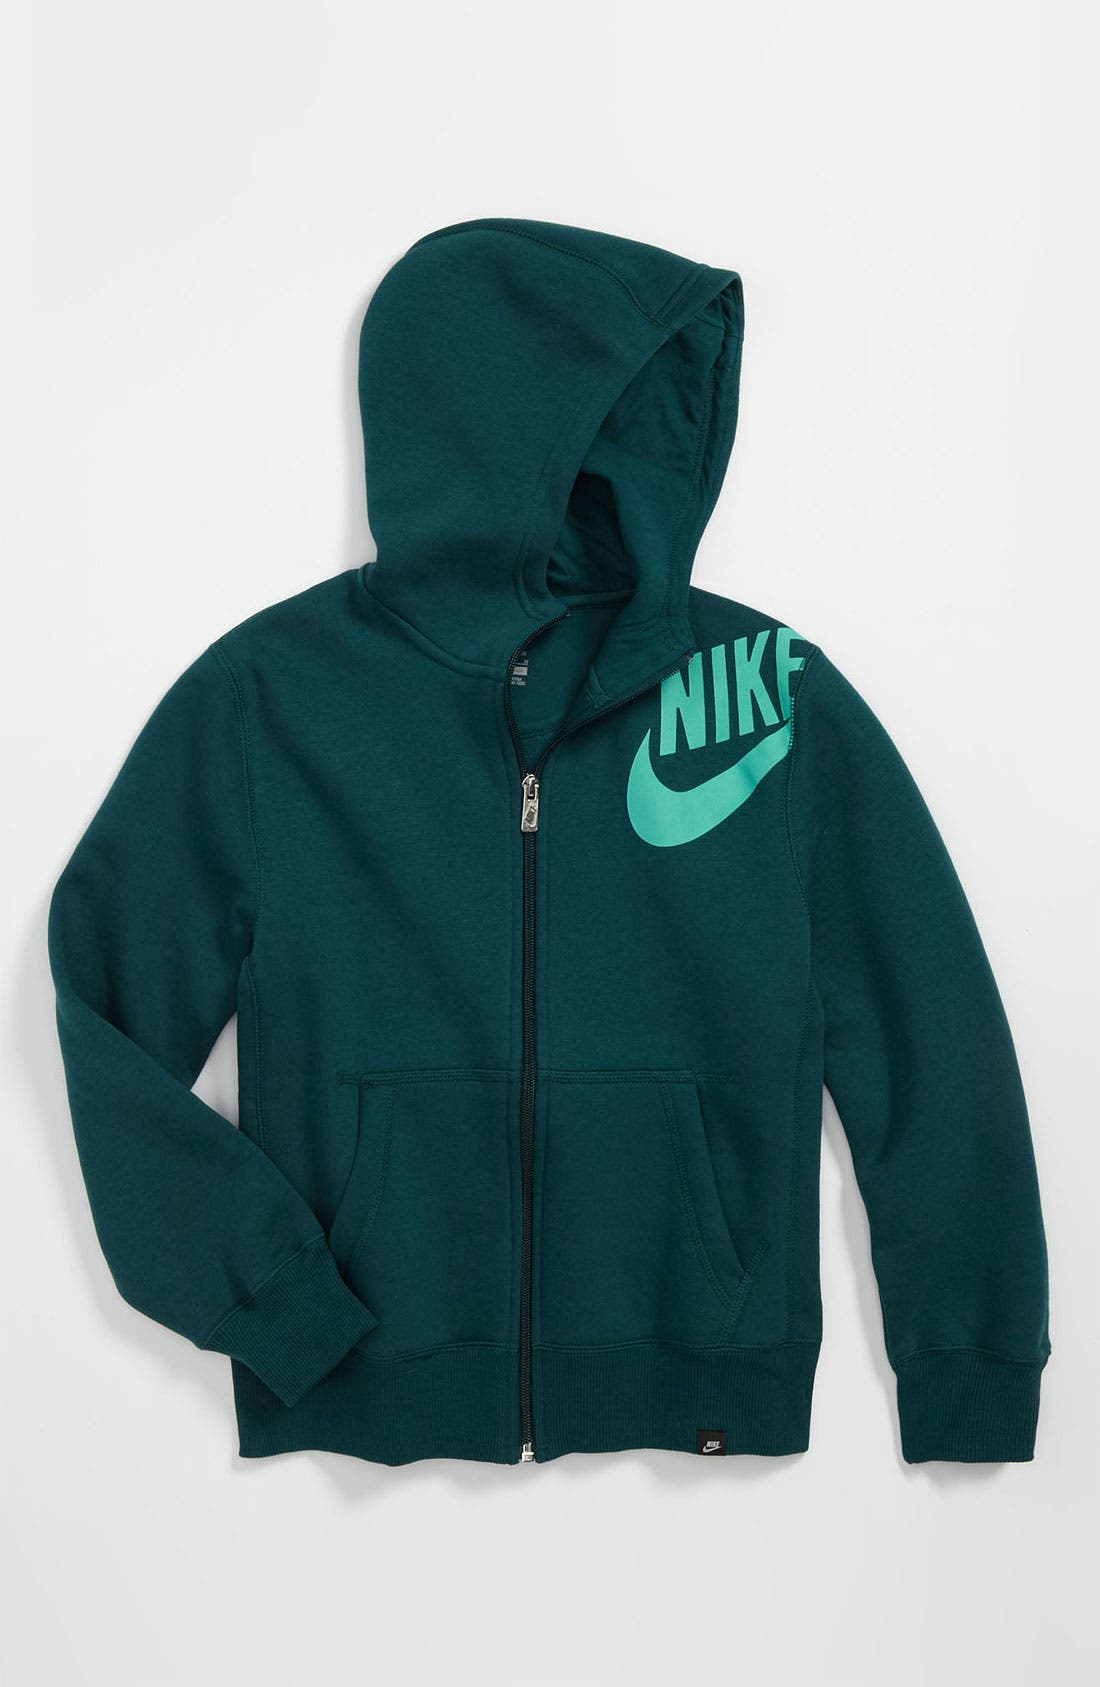 Alternate Image 1 Selected - Nike 'Limitless' Hoodie (Big Boys)